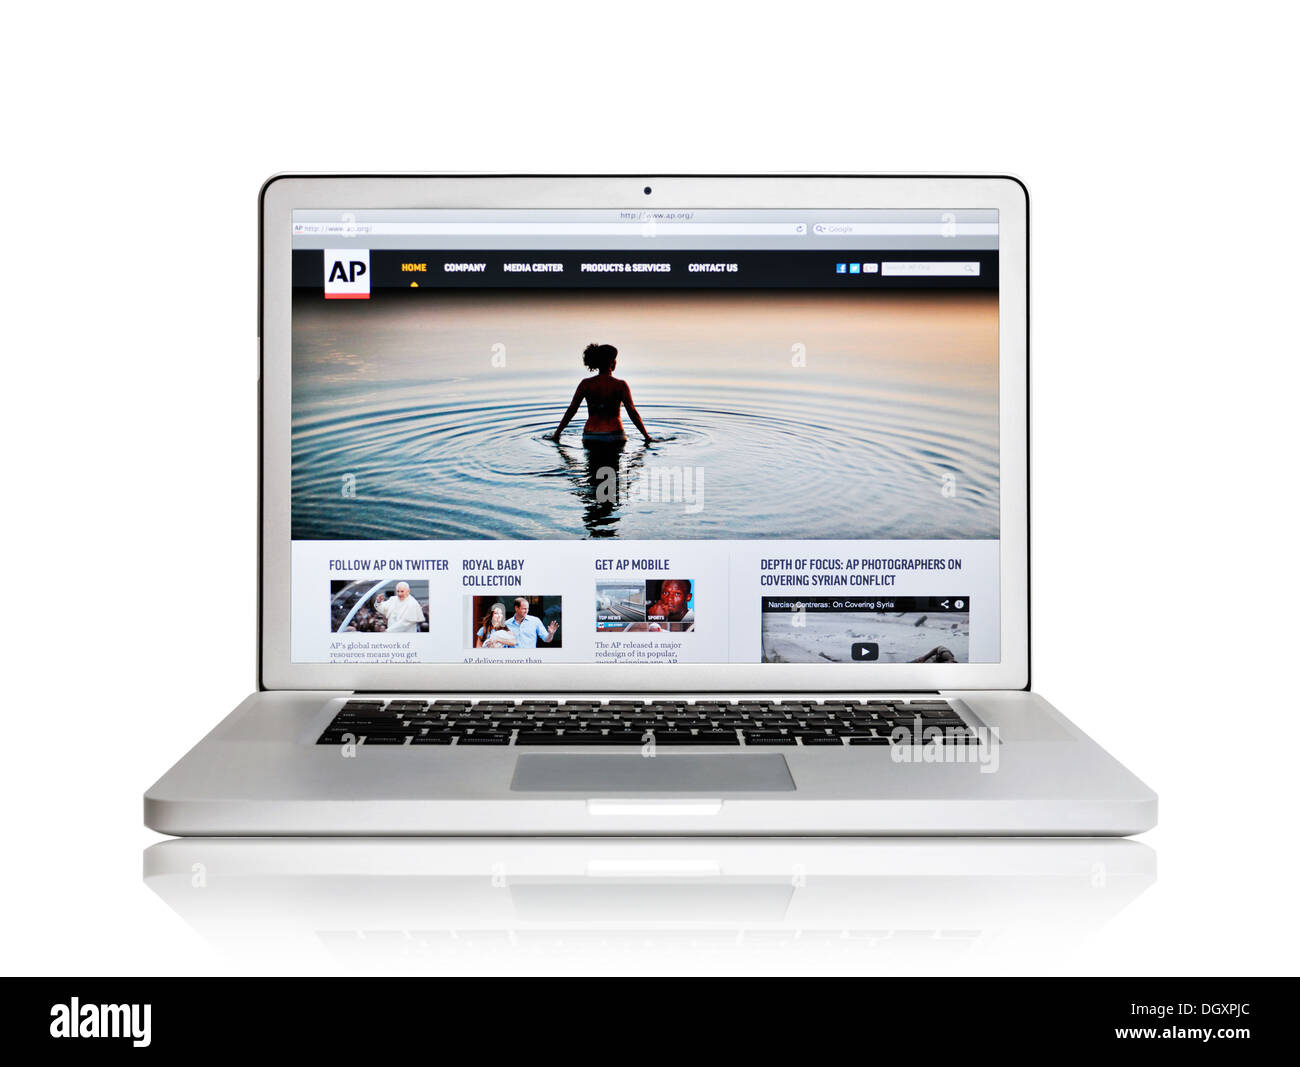 Associated Press website on laptop screen - Stock Image